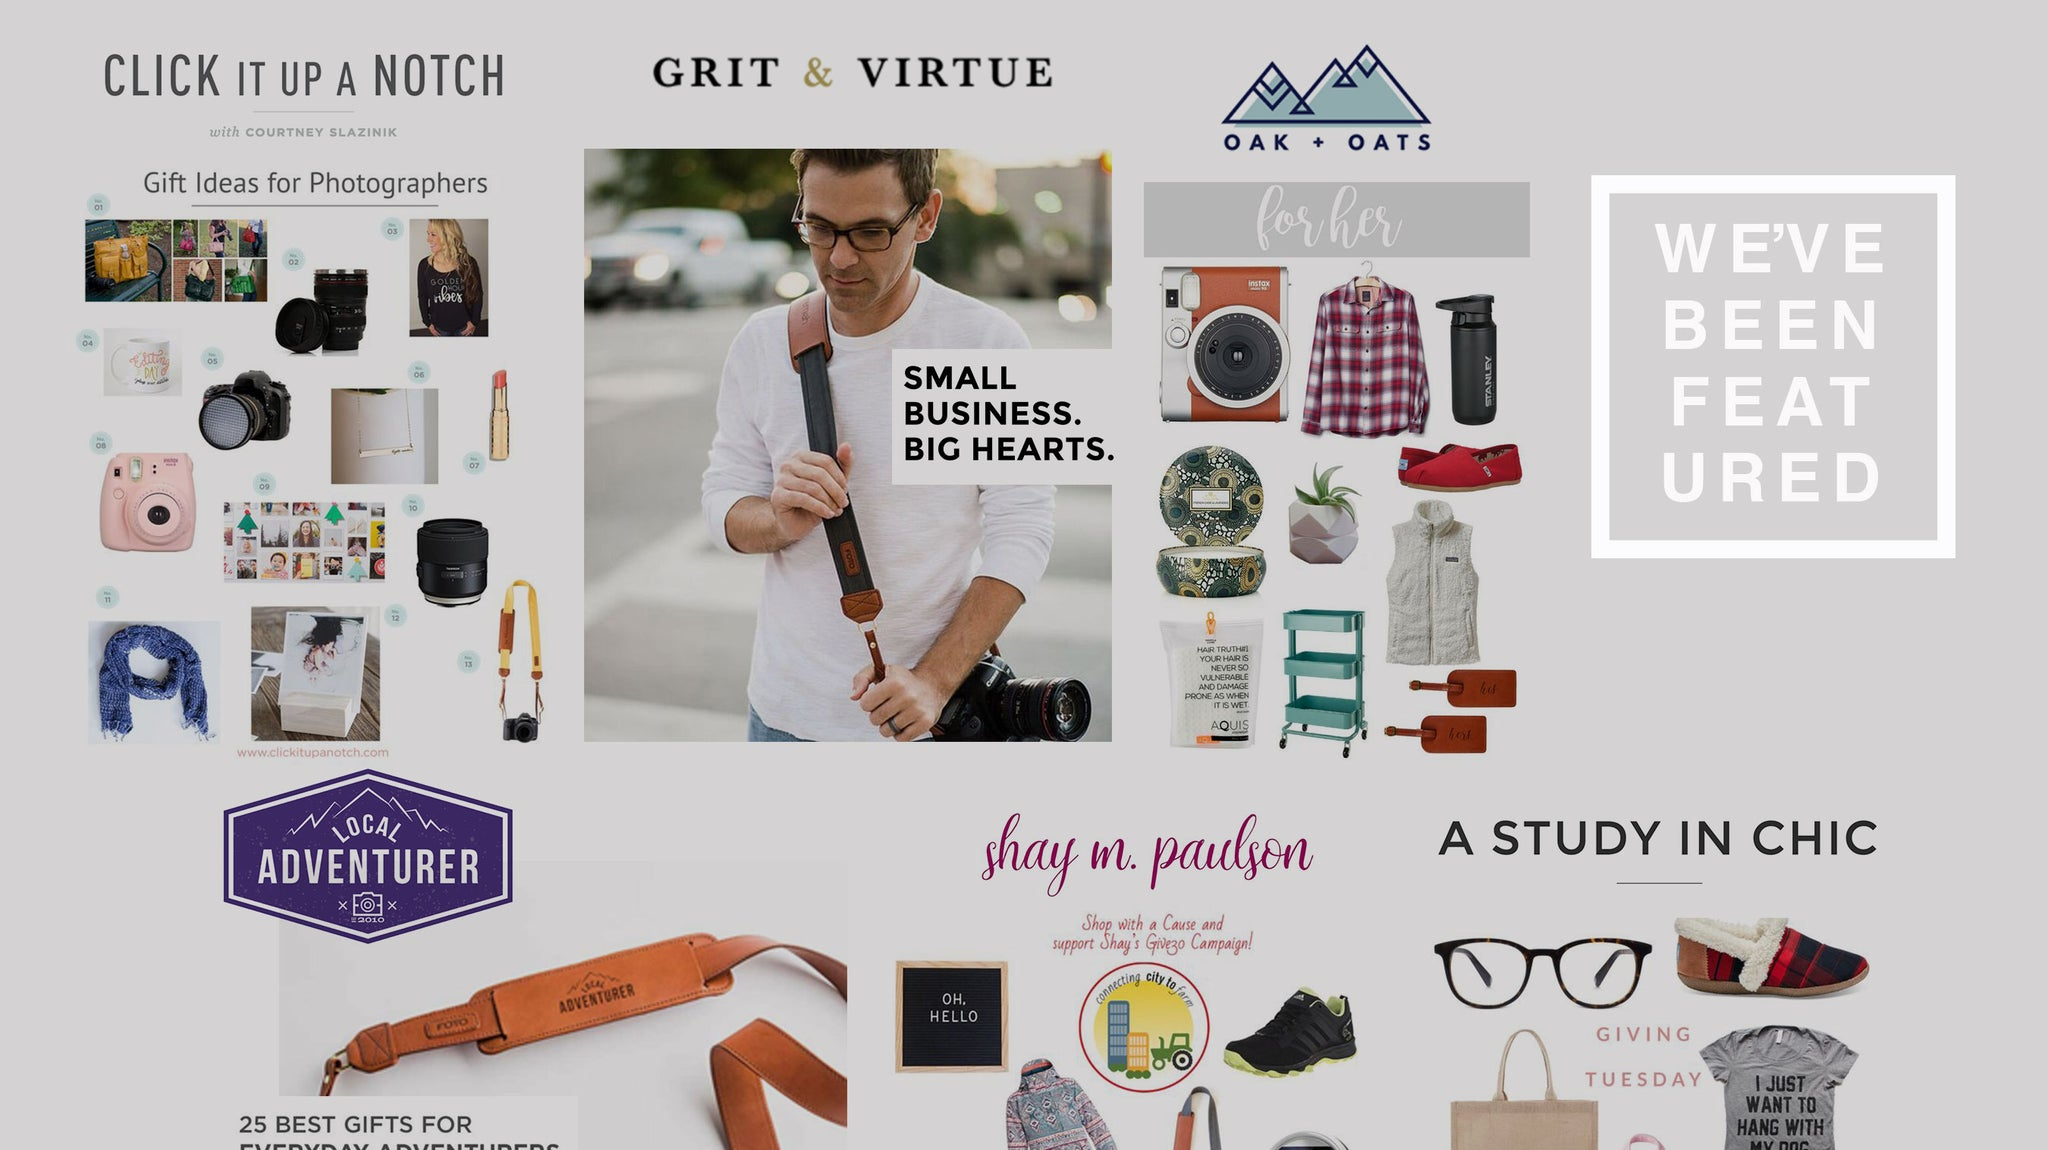 We've Been Featured! A Collection of Holiday Gift Guides